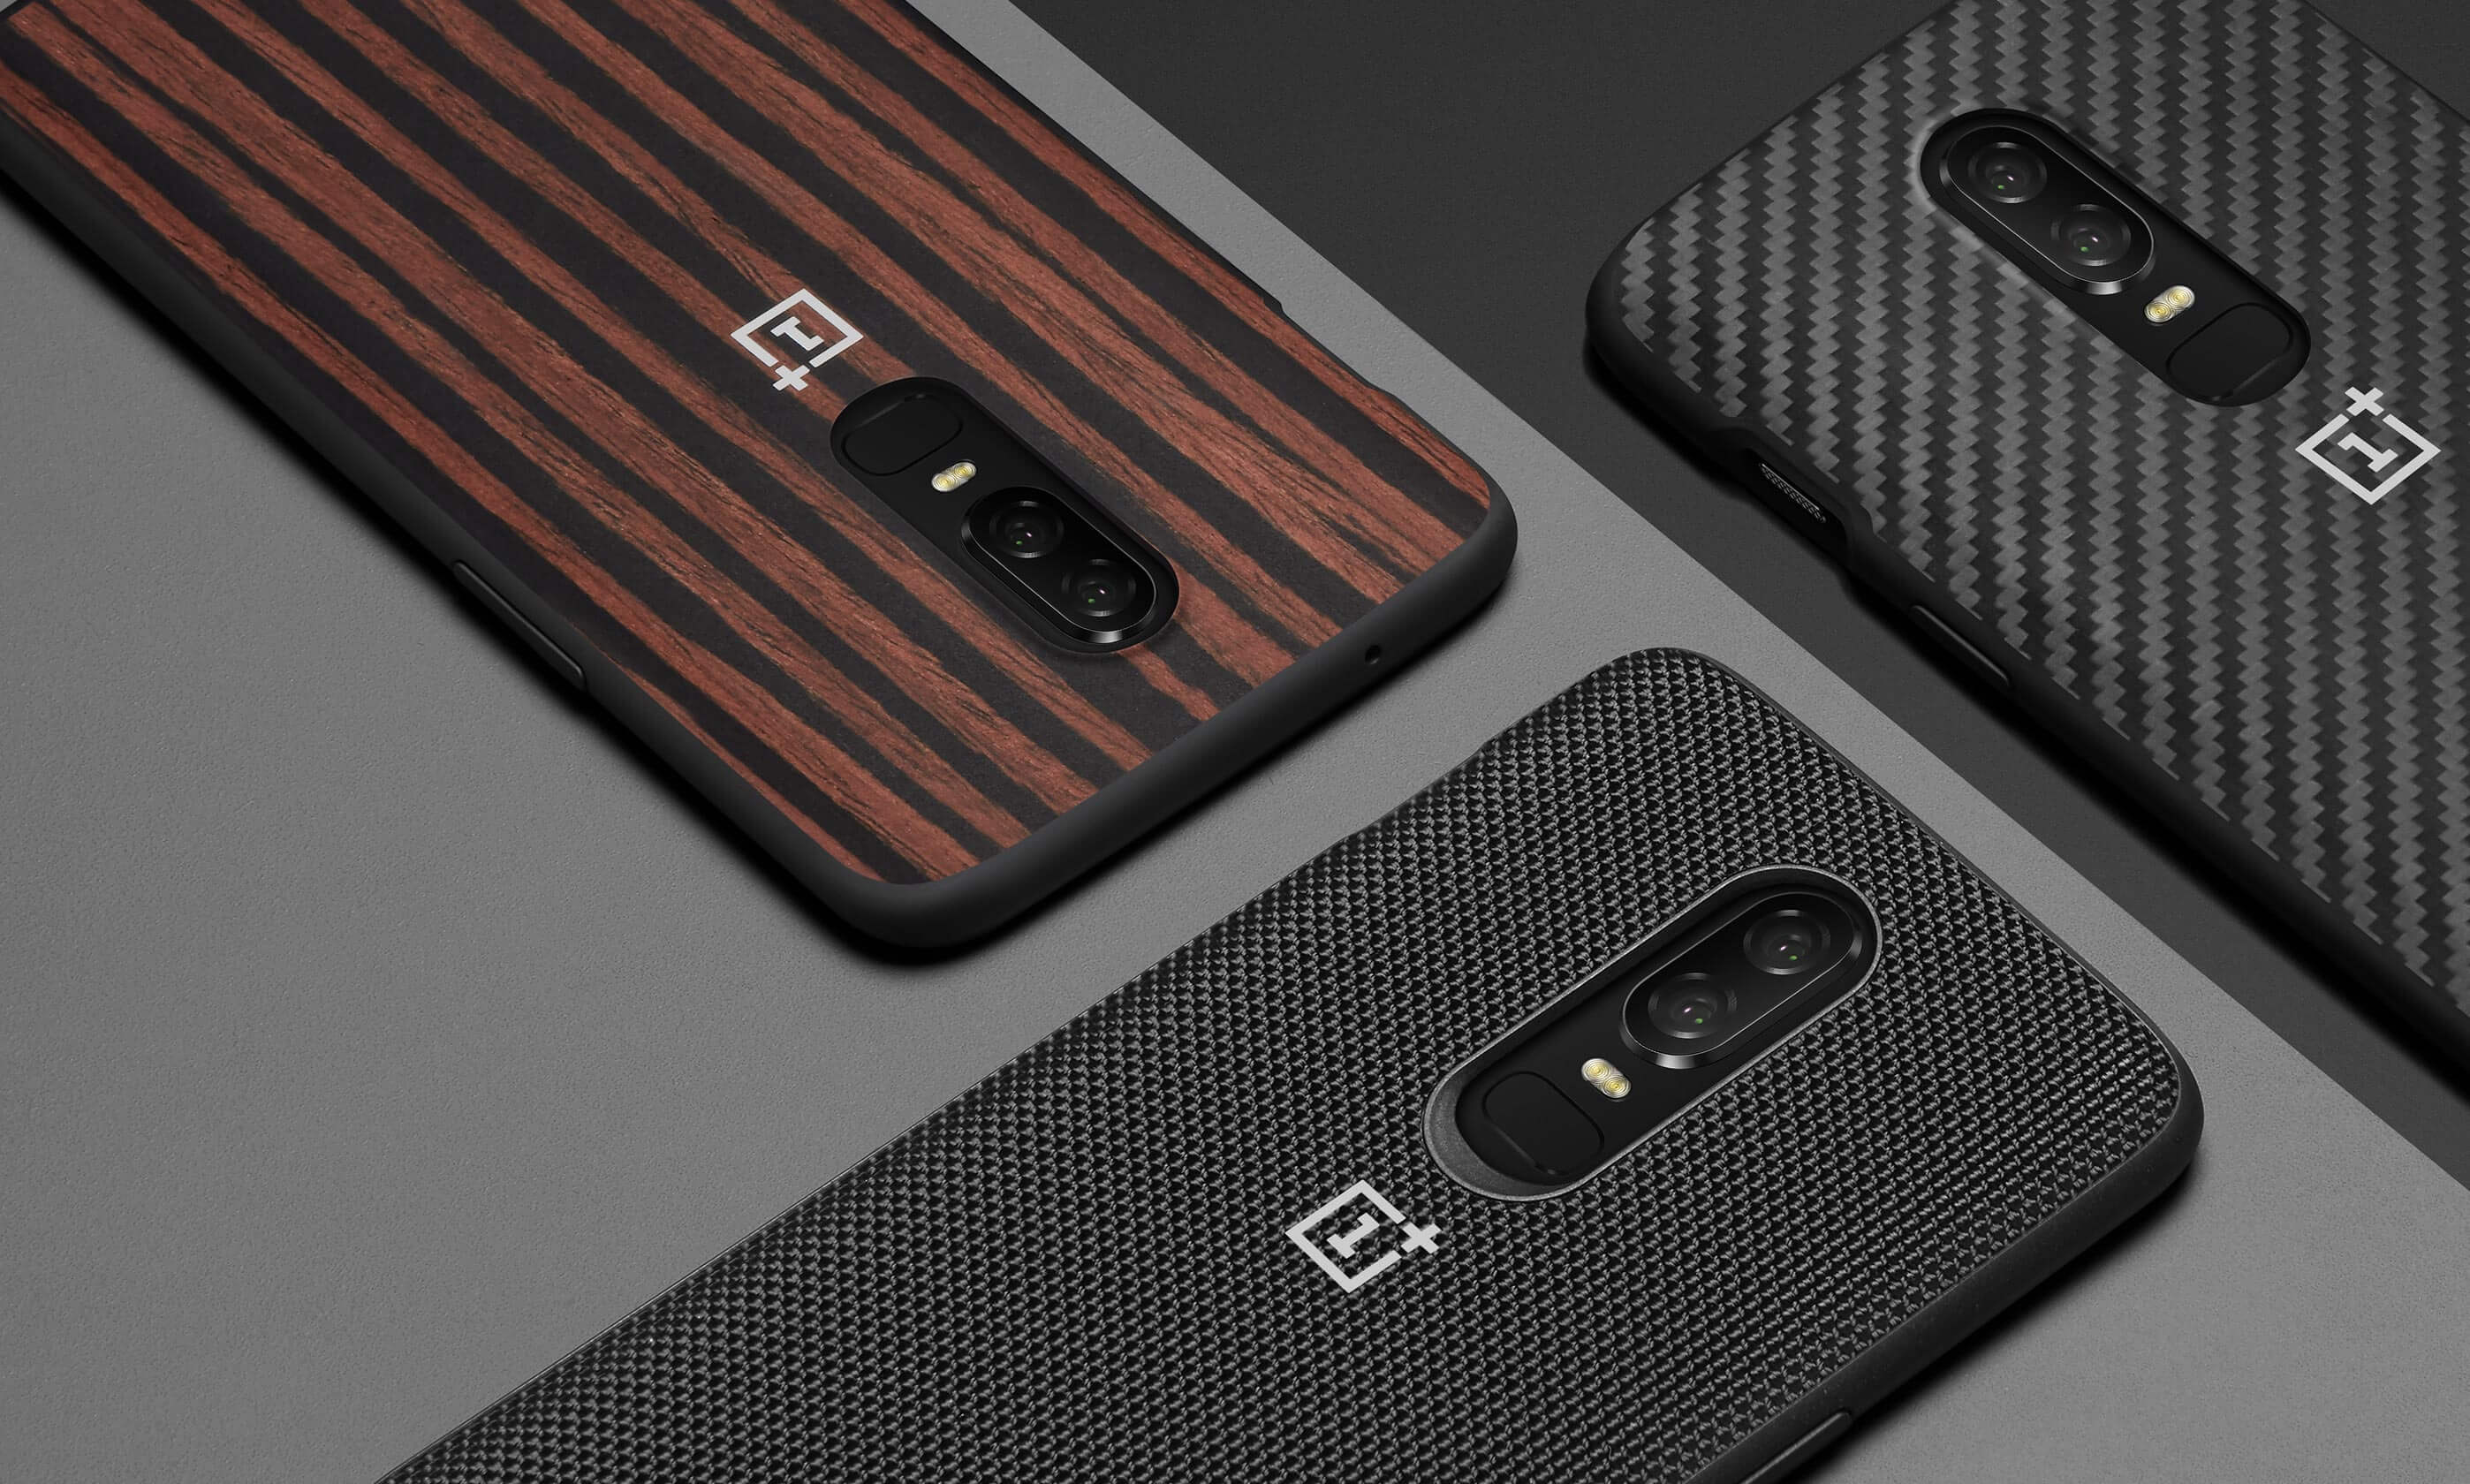 promo code 7be41 7568a OnePlus 6 Bumper Case - OnePlus (India)